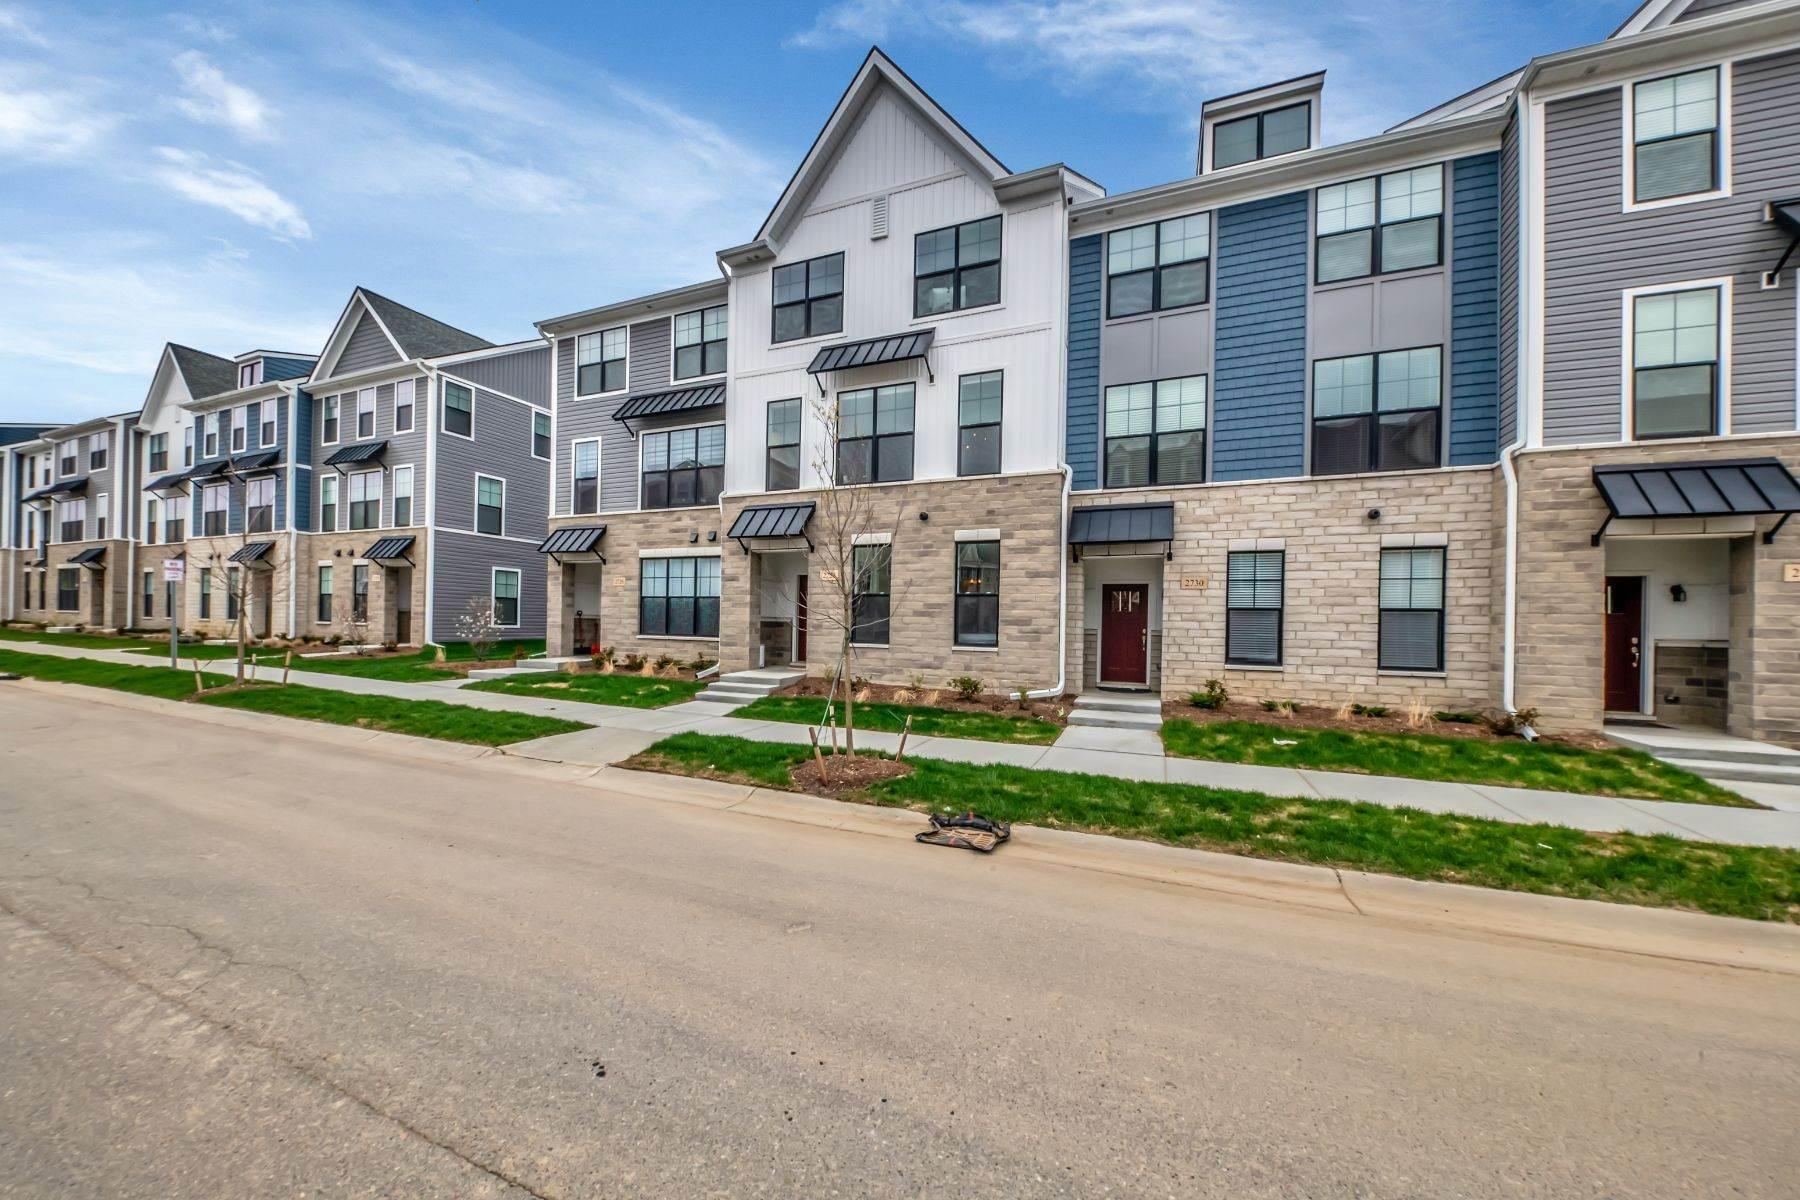 Condominiums for Sale at Ann Arbor 2728 South Spurway Drive, Unit 424 Ann Arbor, Michigan 48105 United States